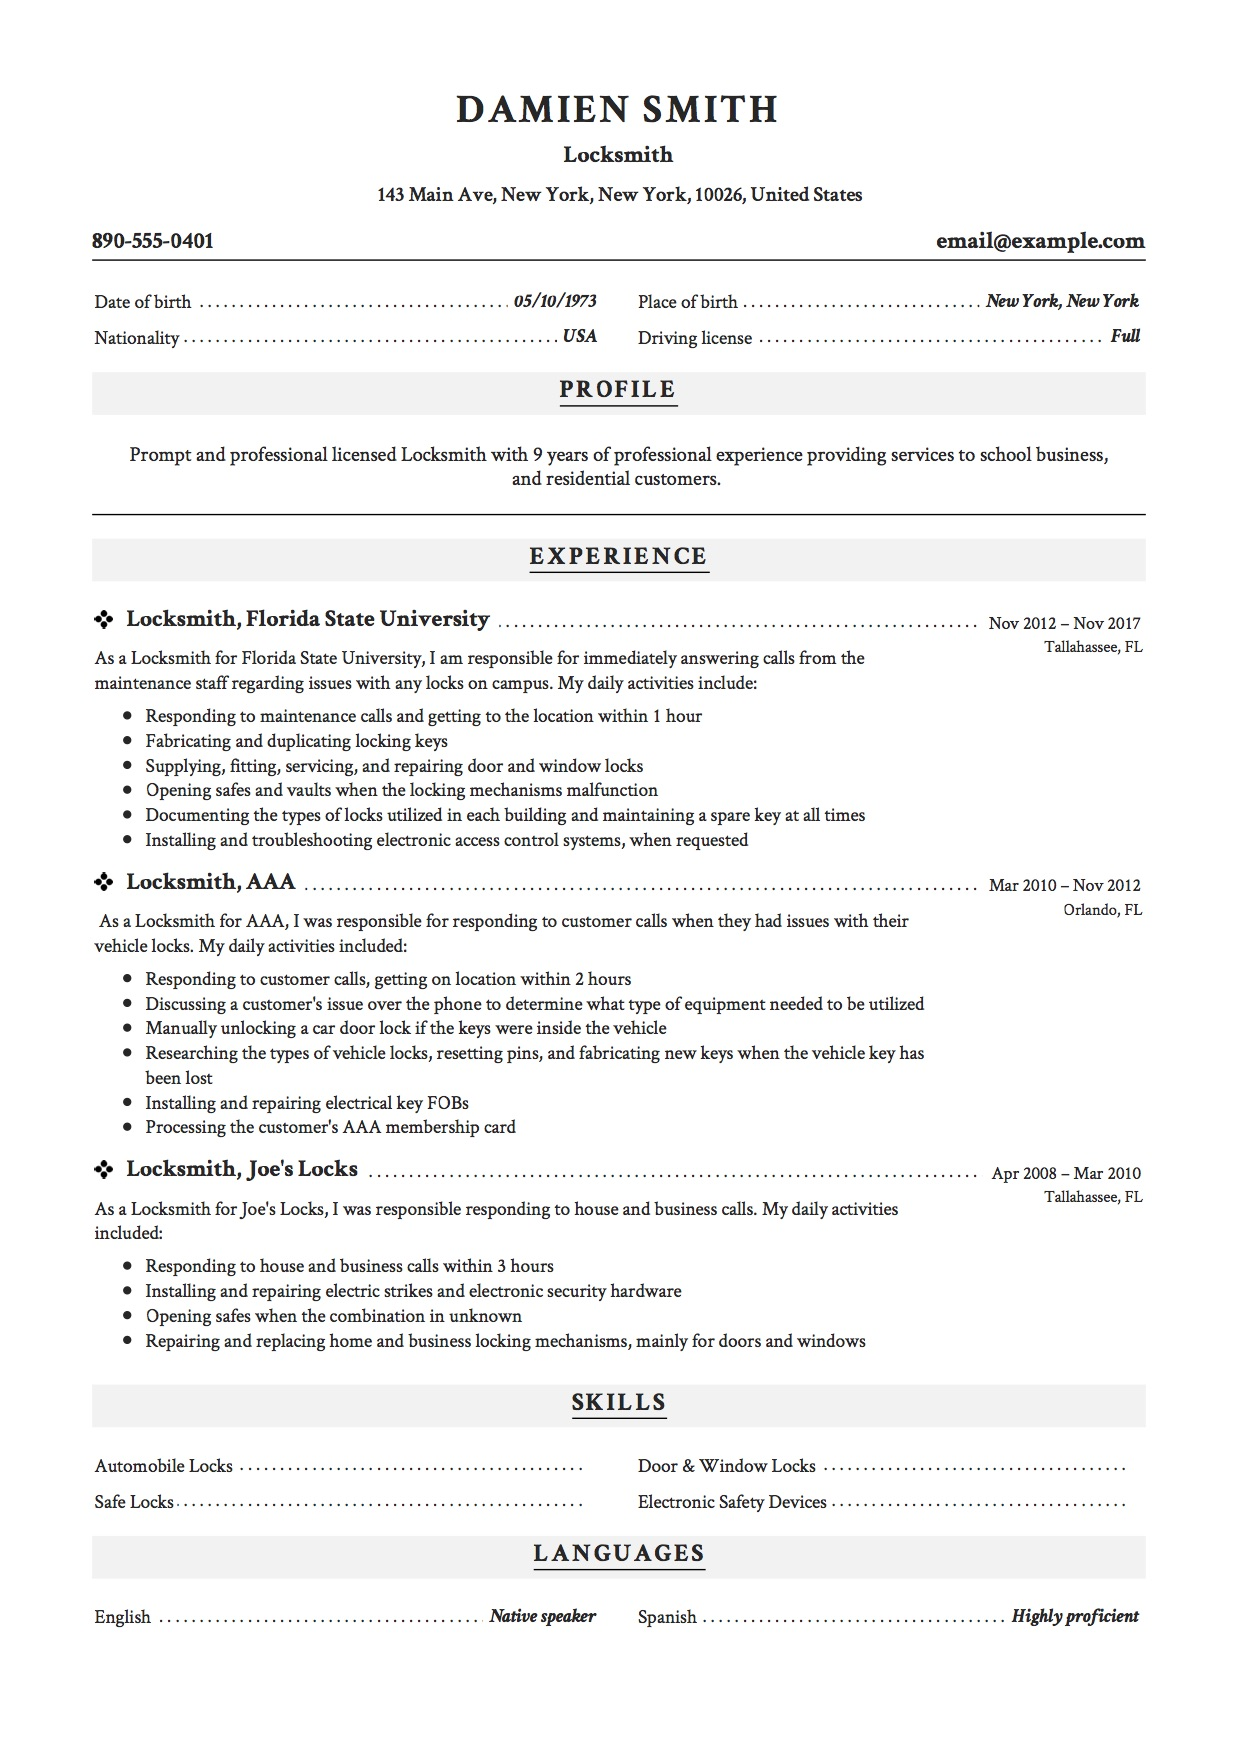 Professional Locksmith Resume